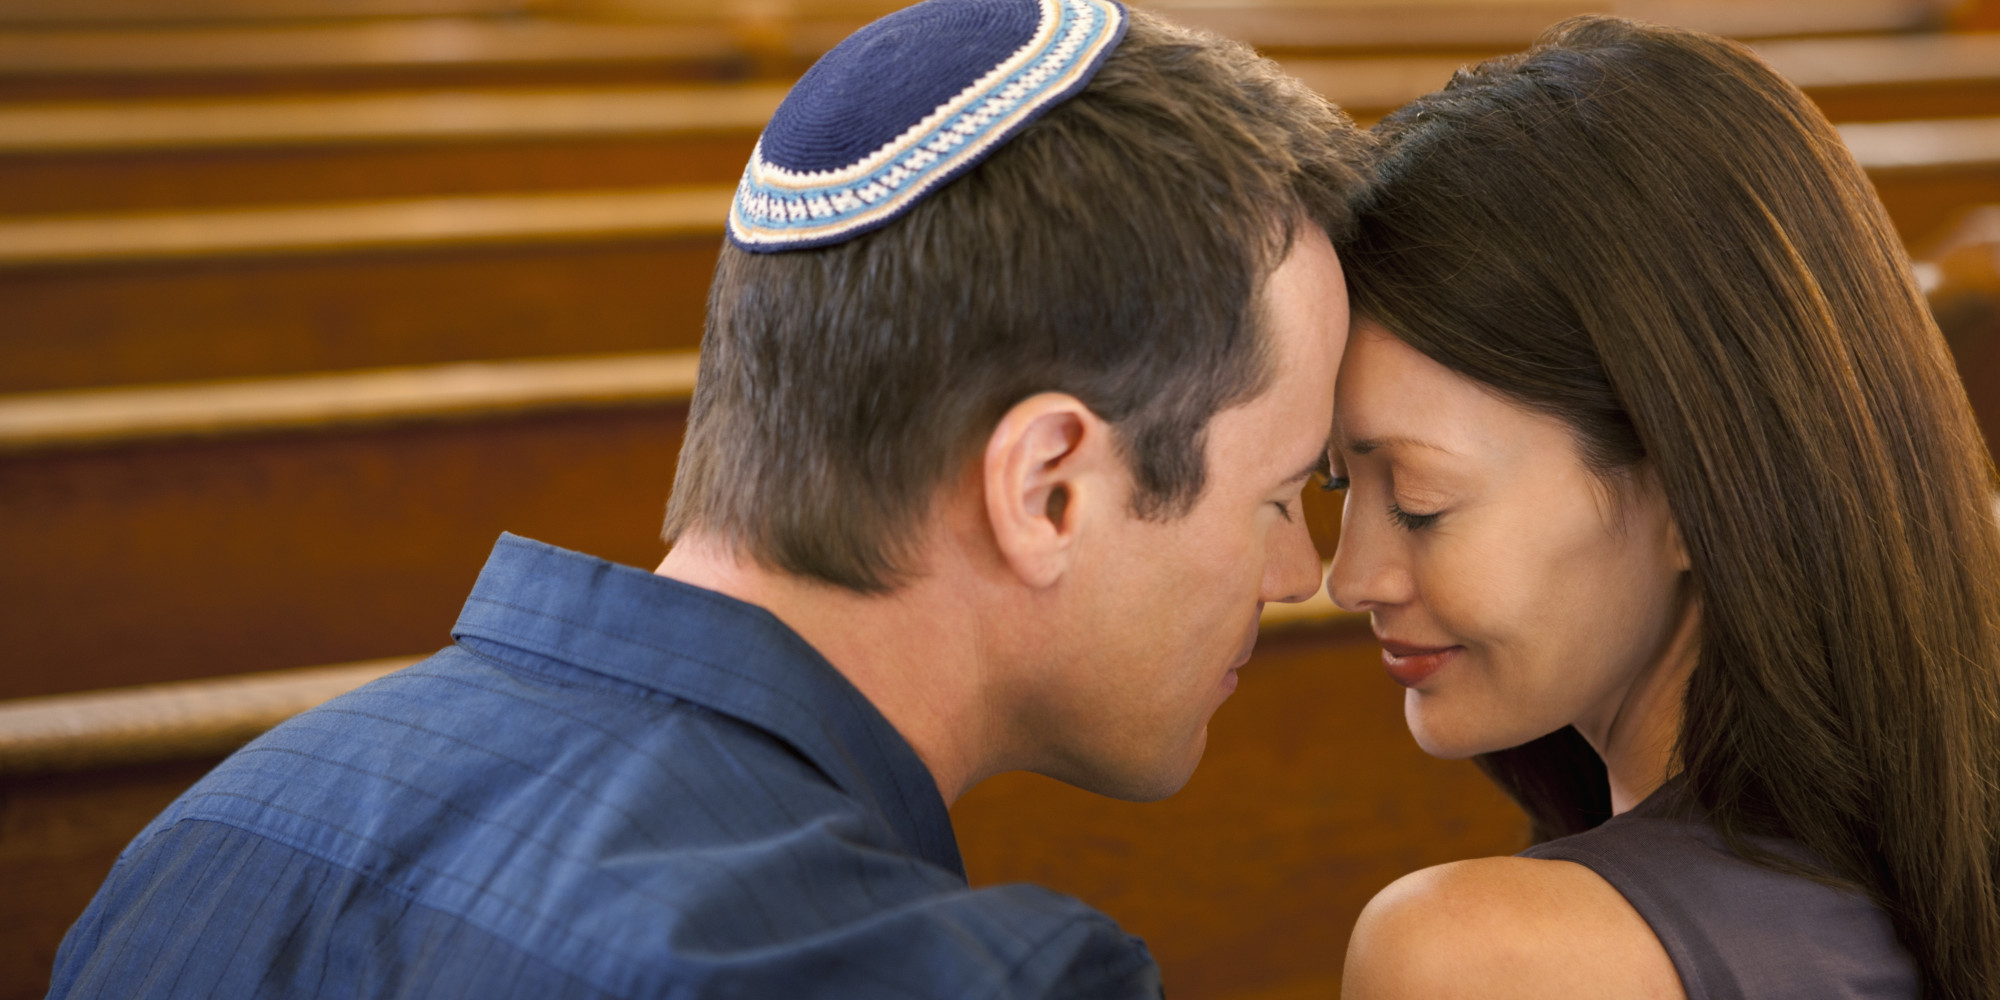 jewish women having sex